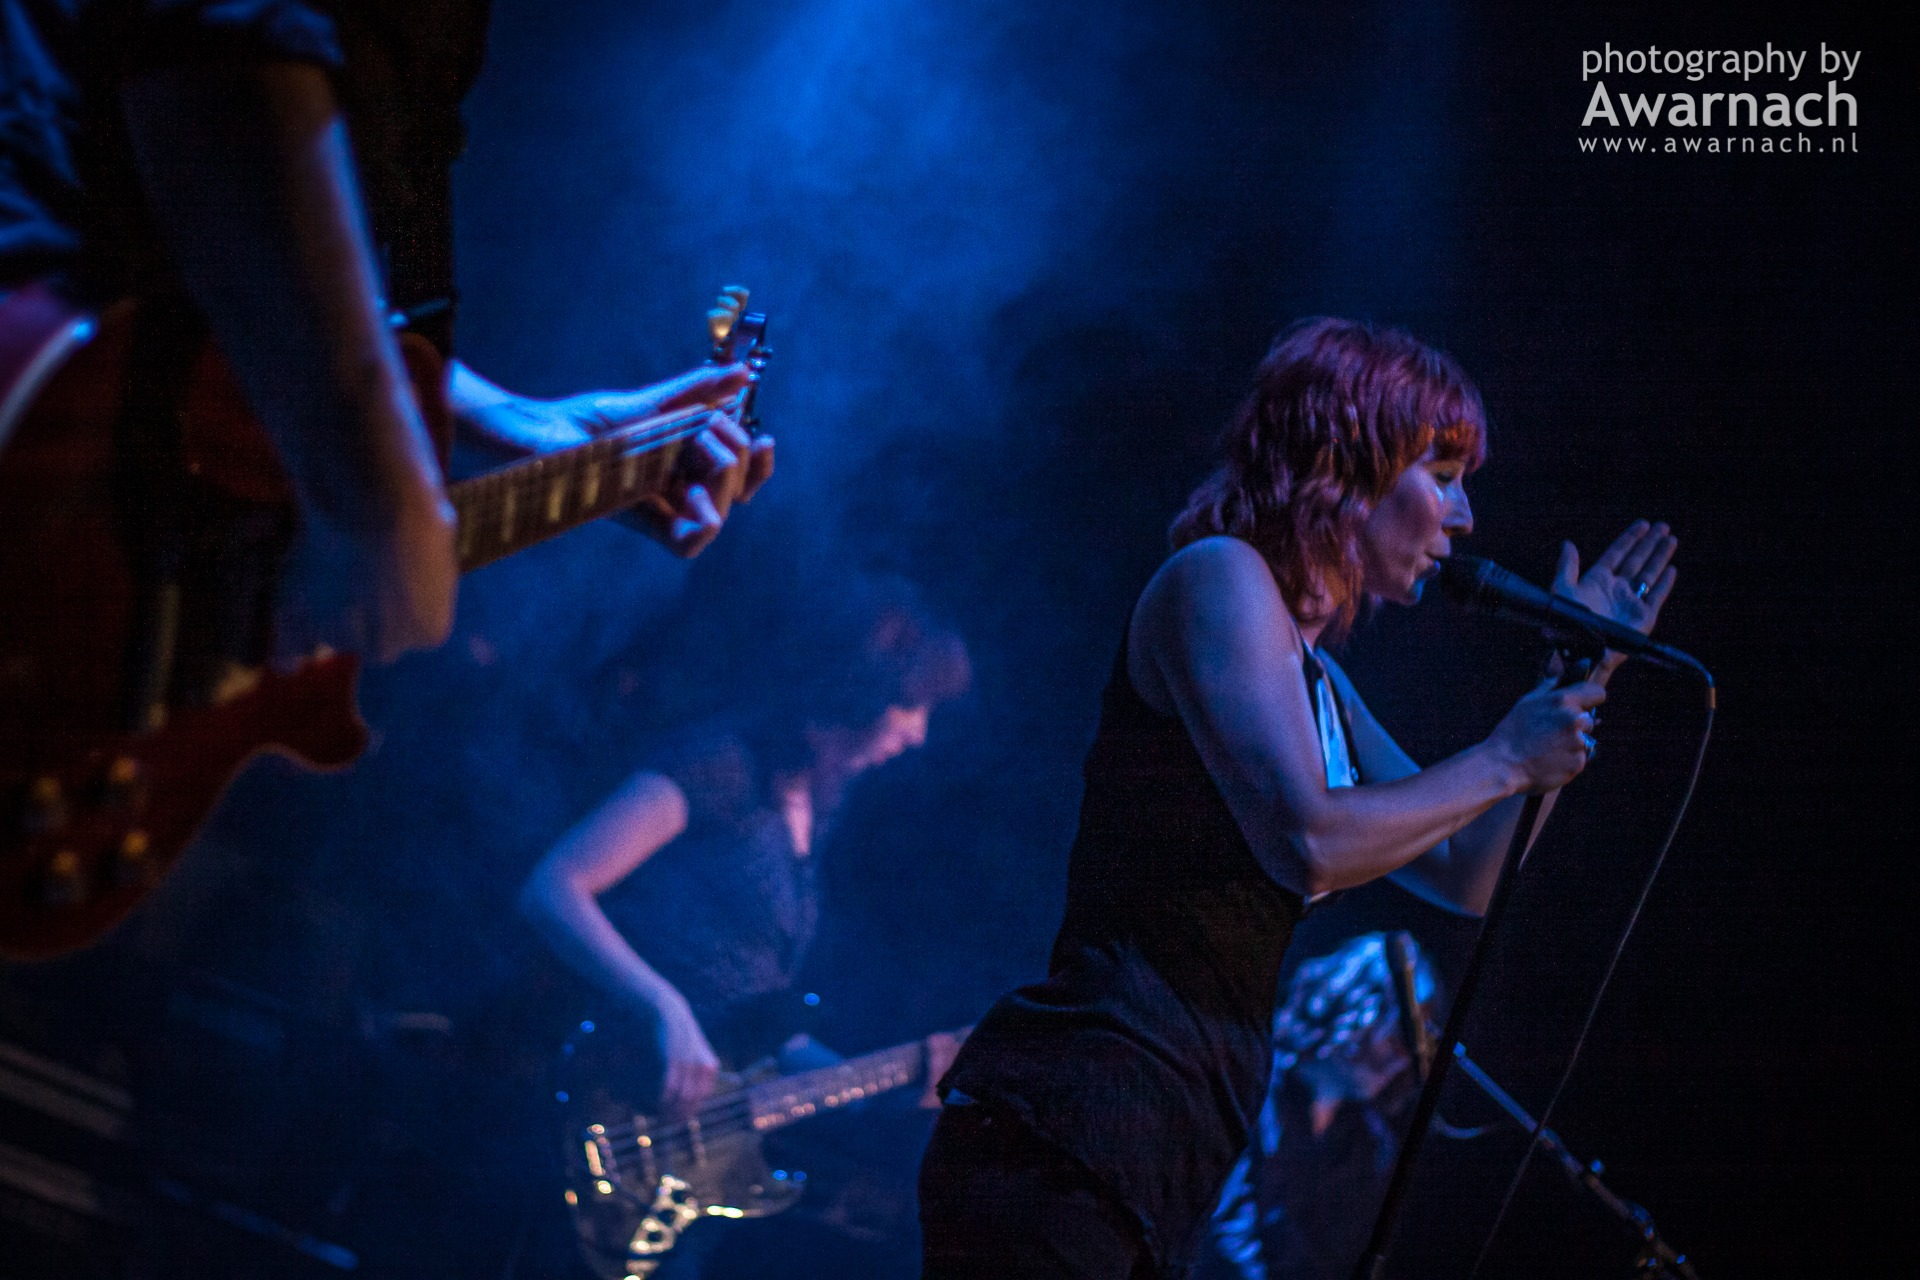 The Gathering - P3, Purmerend